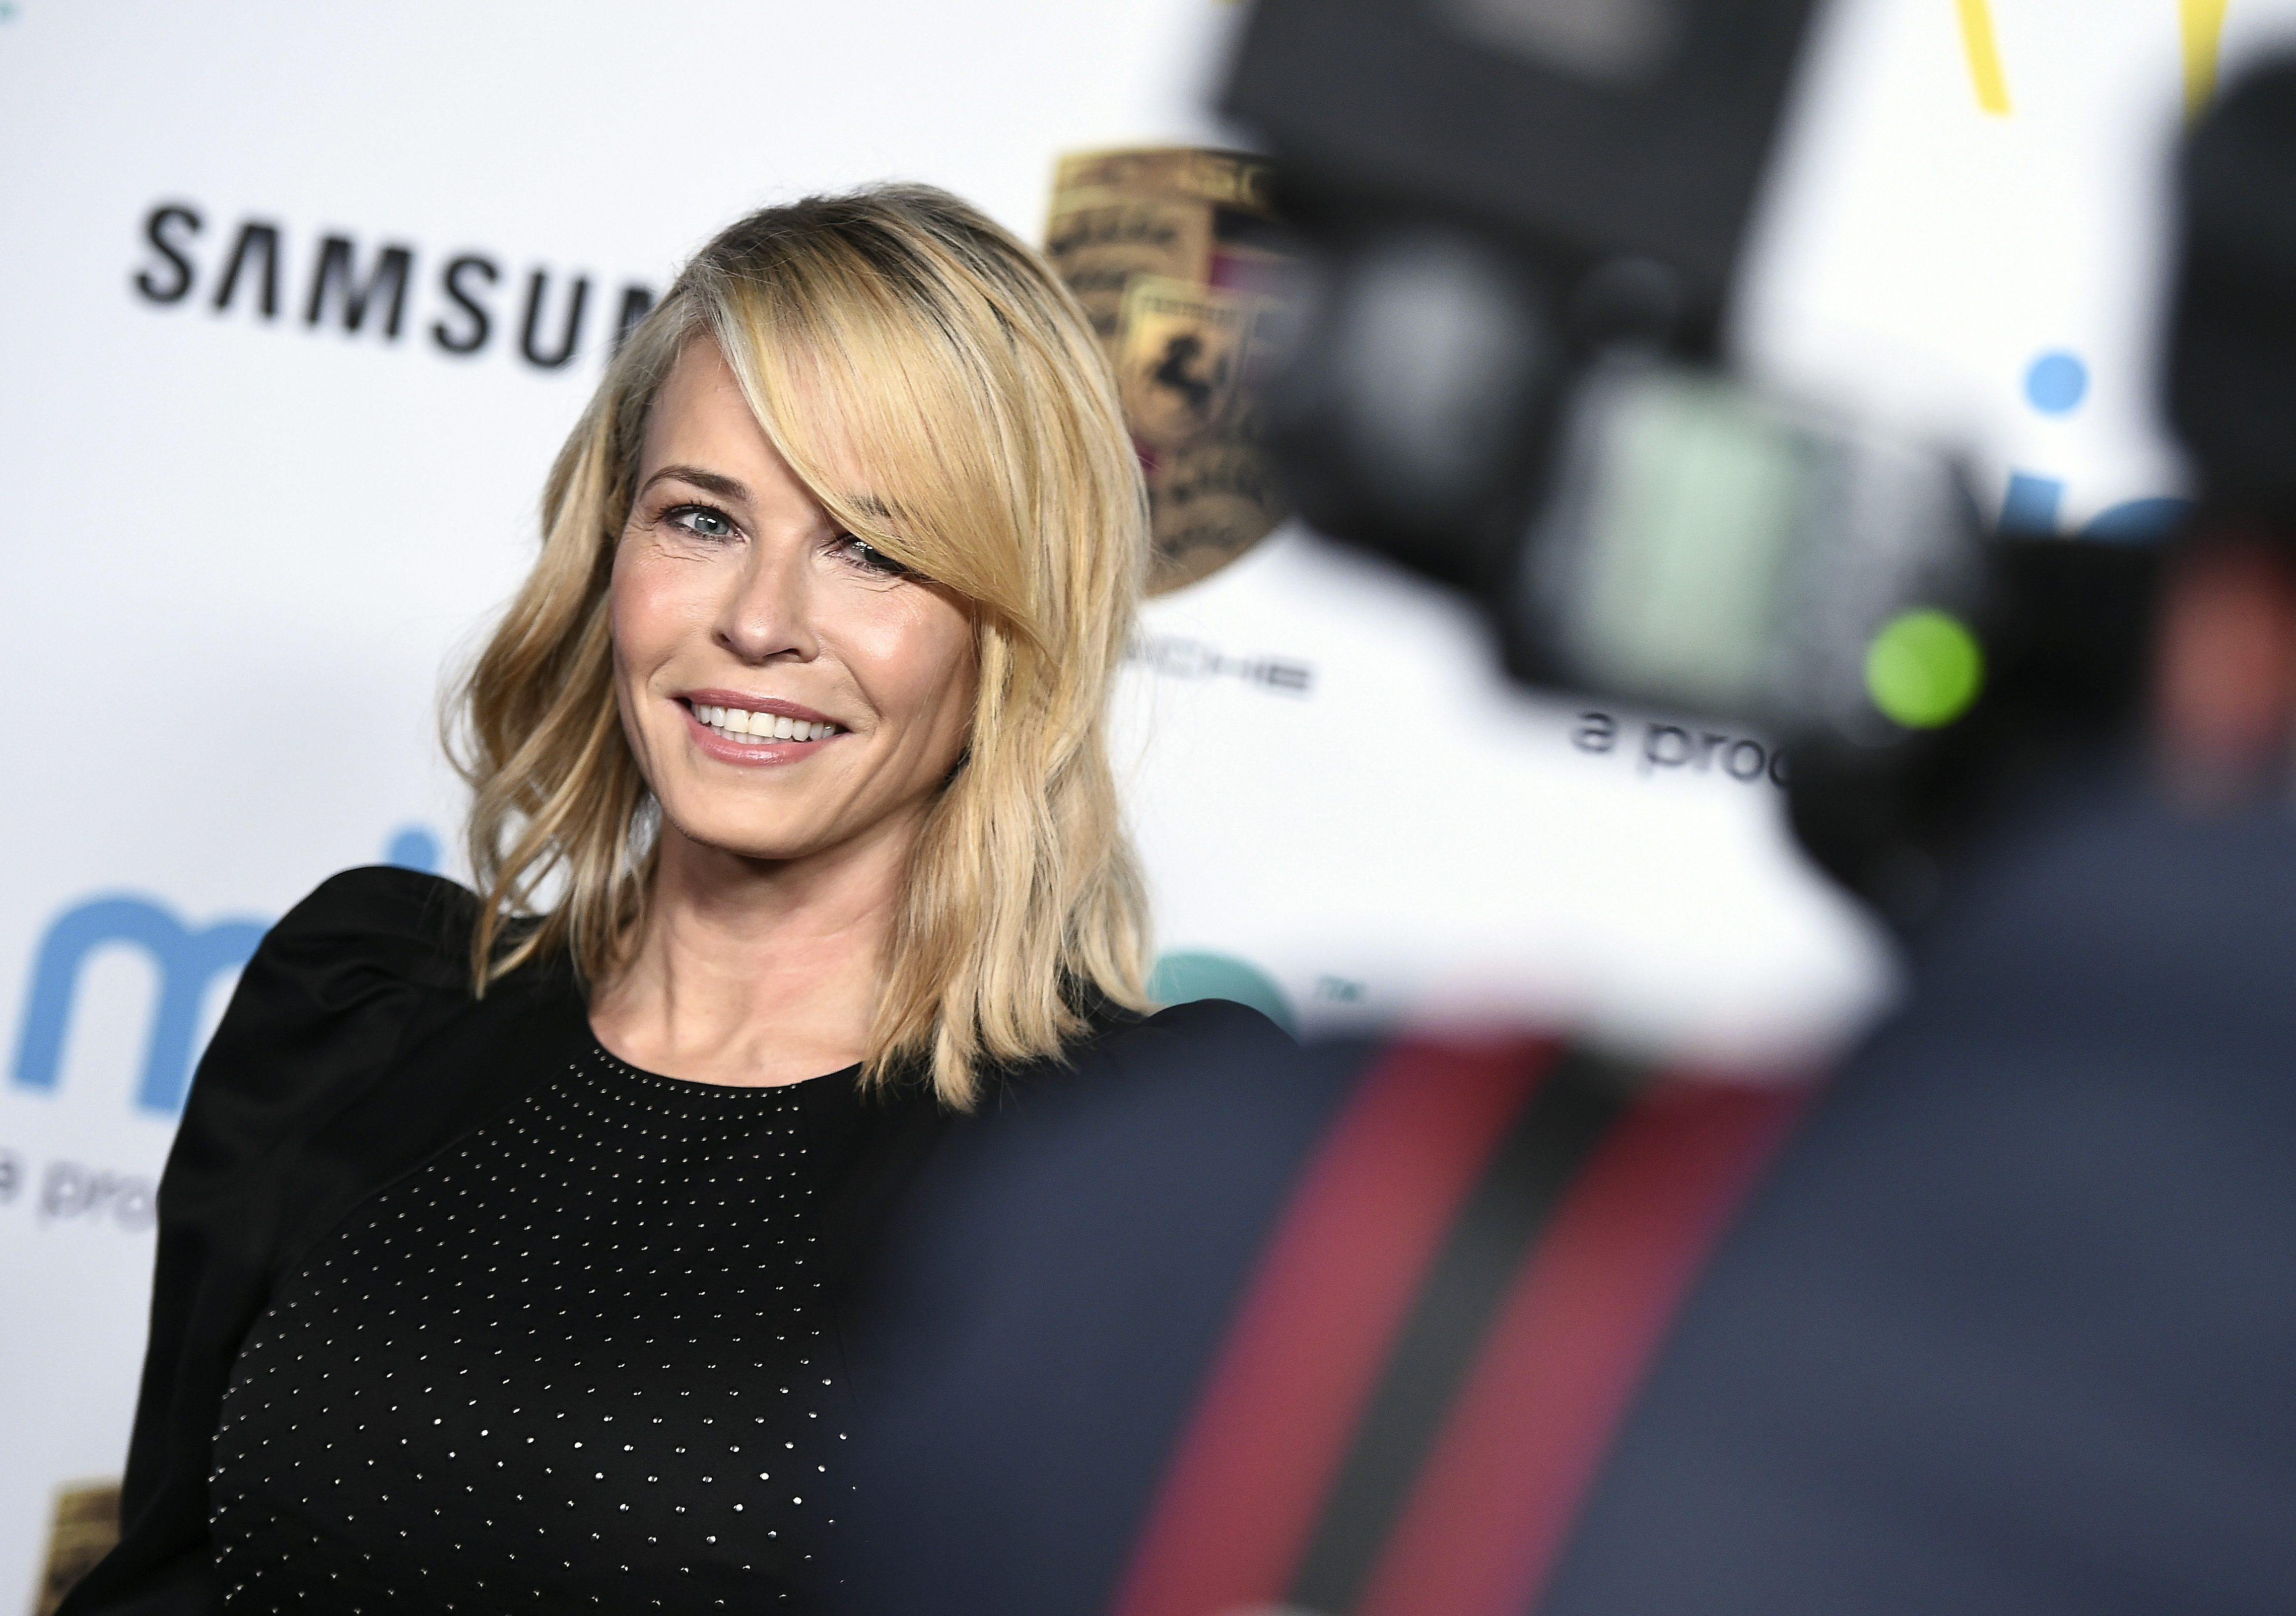 Chelsea Handler admits making film about white privilege 'is an example' of privilege